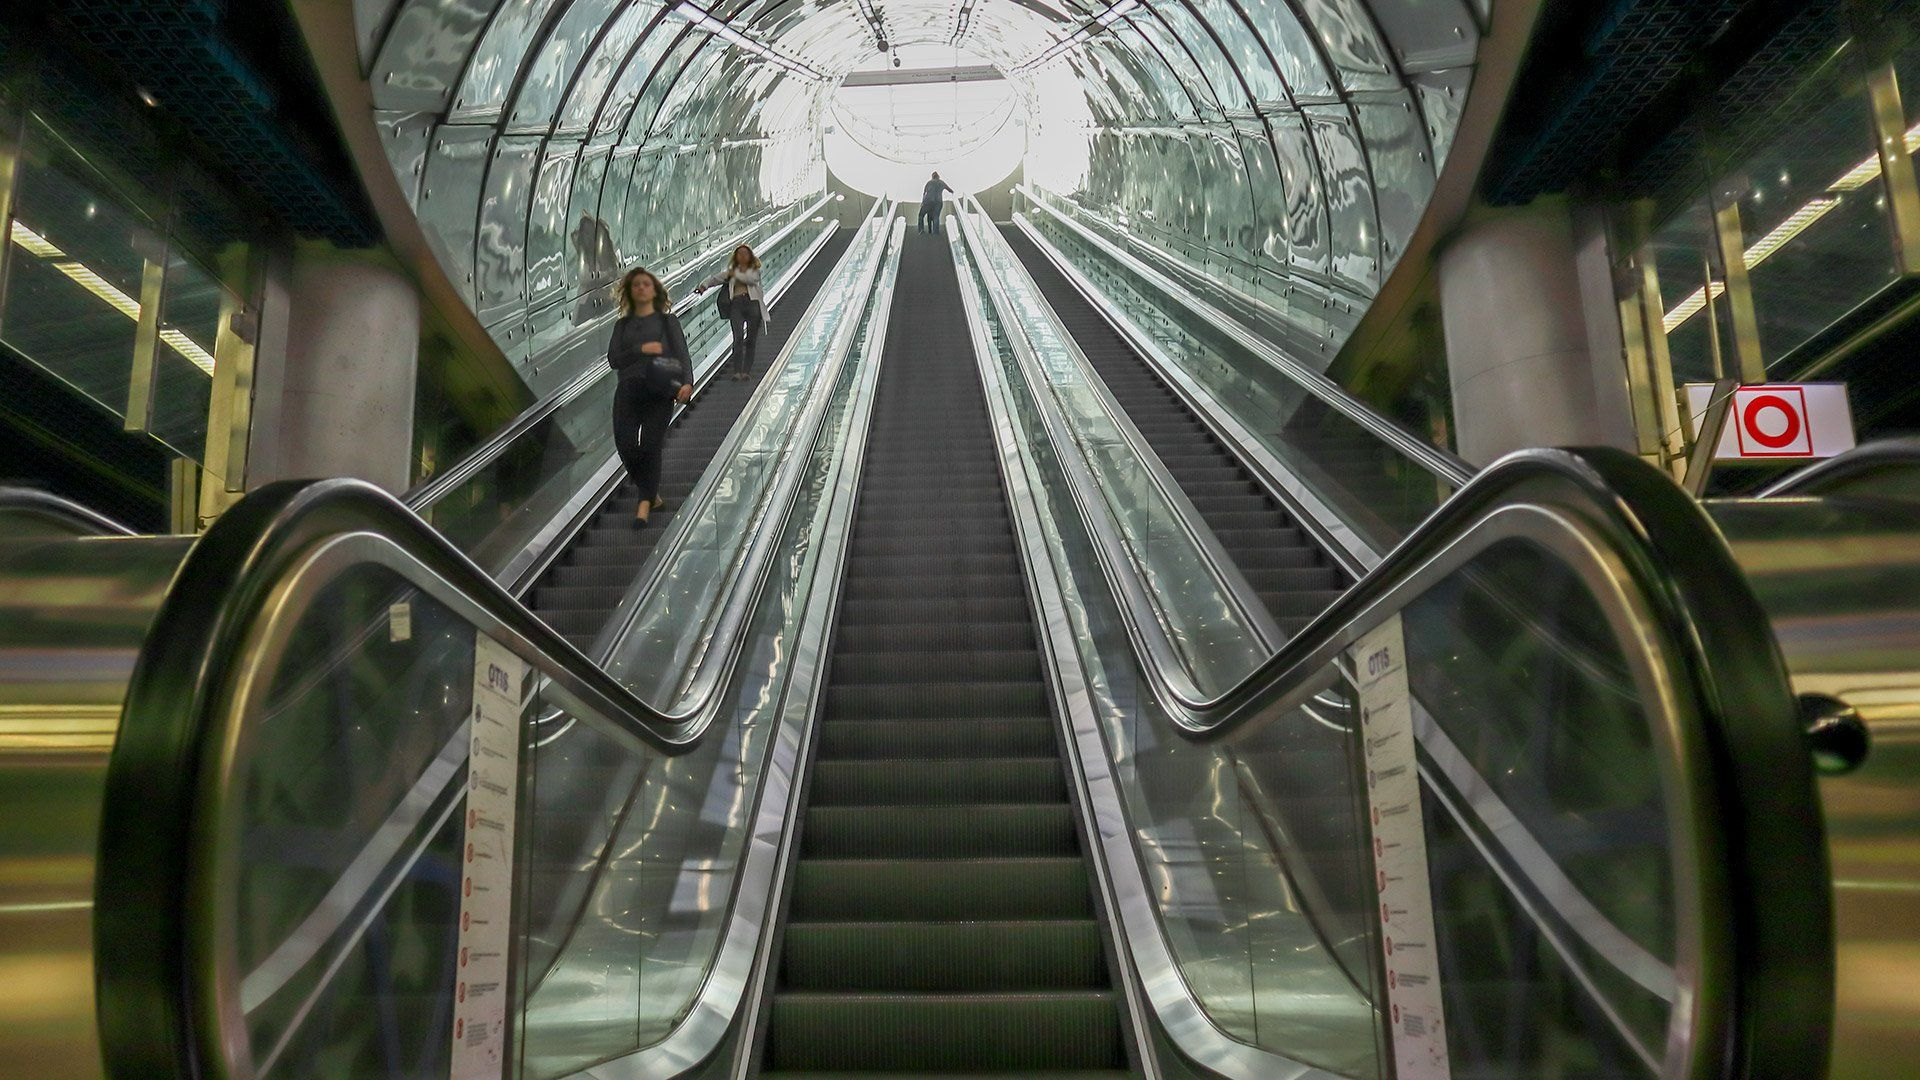 EOS M6 Mark II sample escalator bottom up